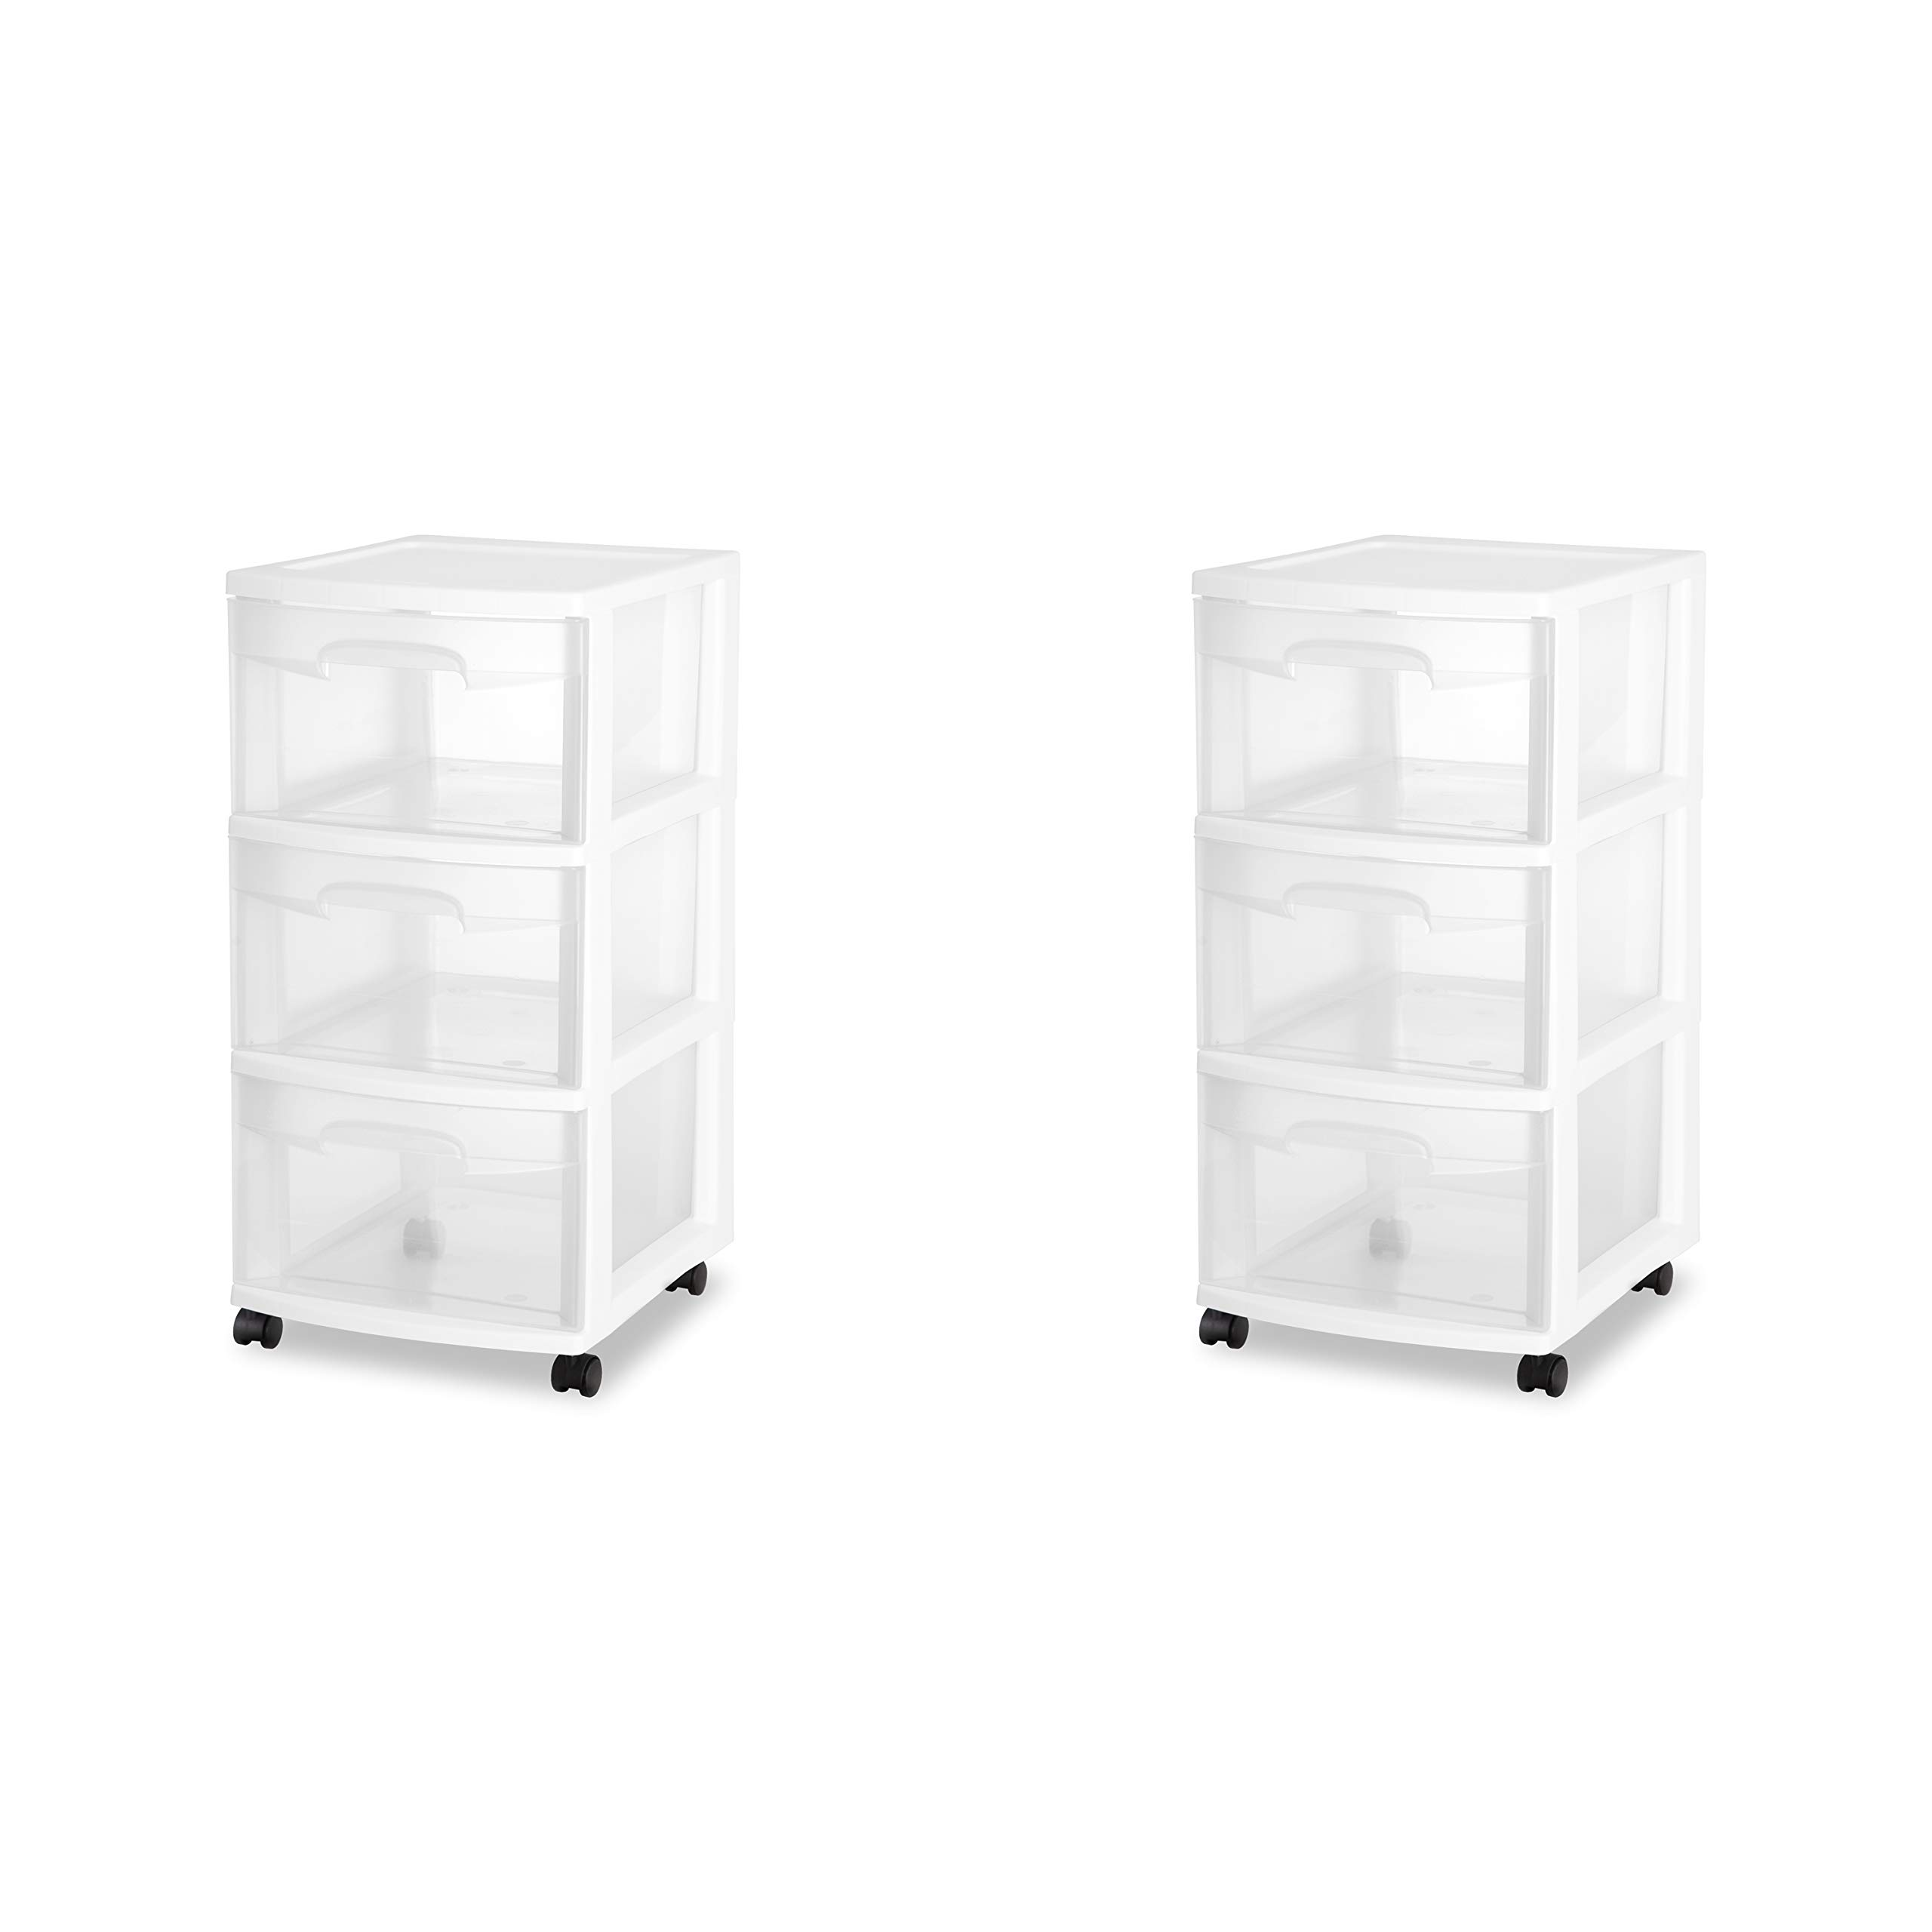 Sterilite 28308002 3 Drawer Cart, White Frame with Clear Drawers and Black Casters, 2-Pack by STERILITE